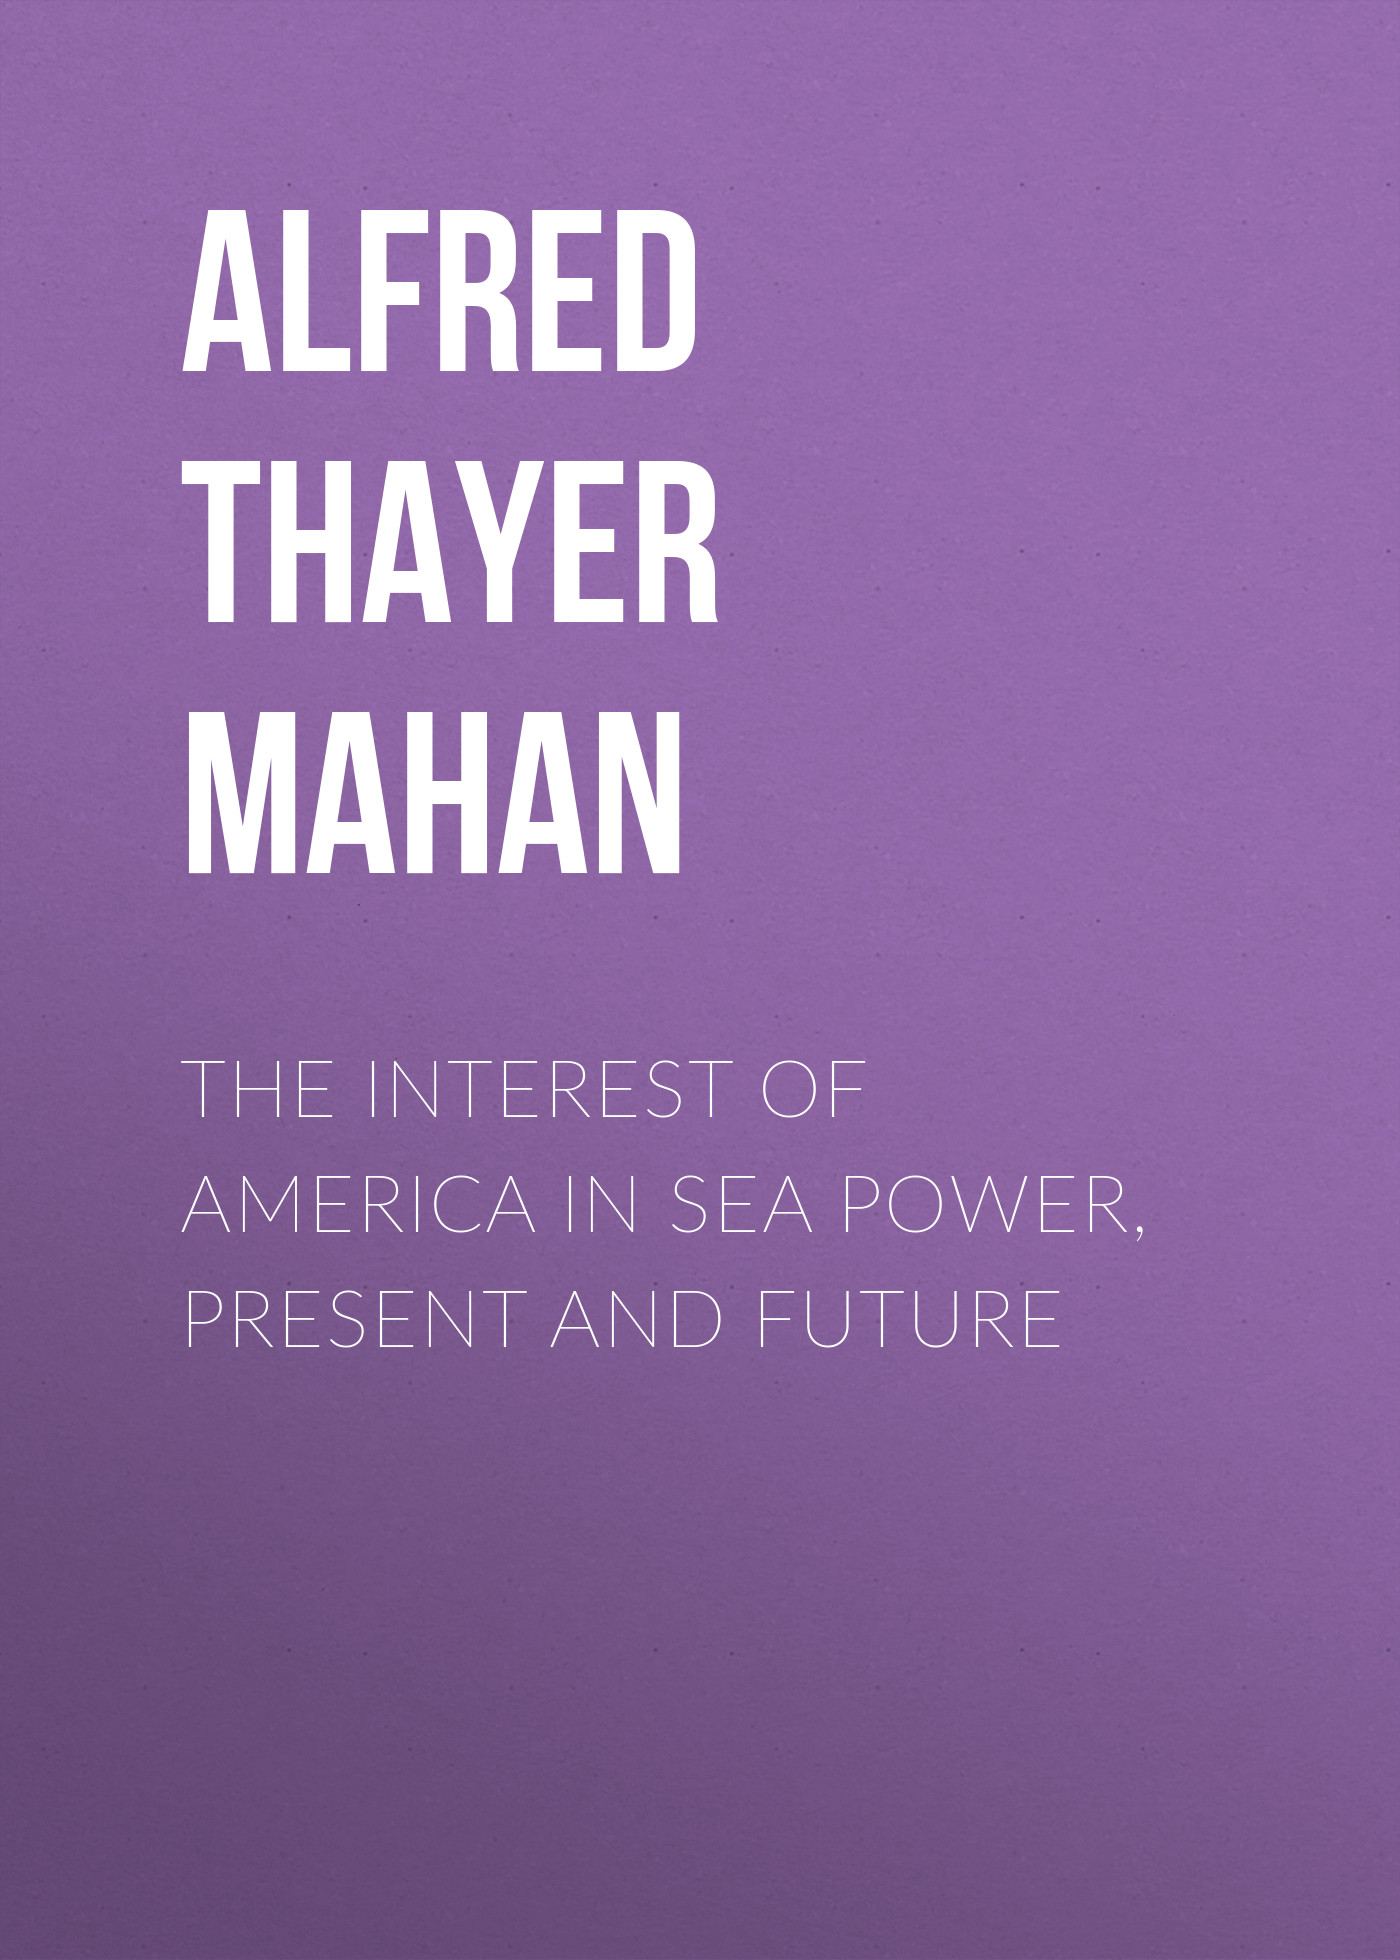 Alfred Thayer Mahan The Interest of America in Sea Power, Present and Future павел ардашев хрестоматия по всеобщей истории том 2